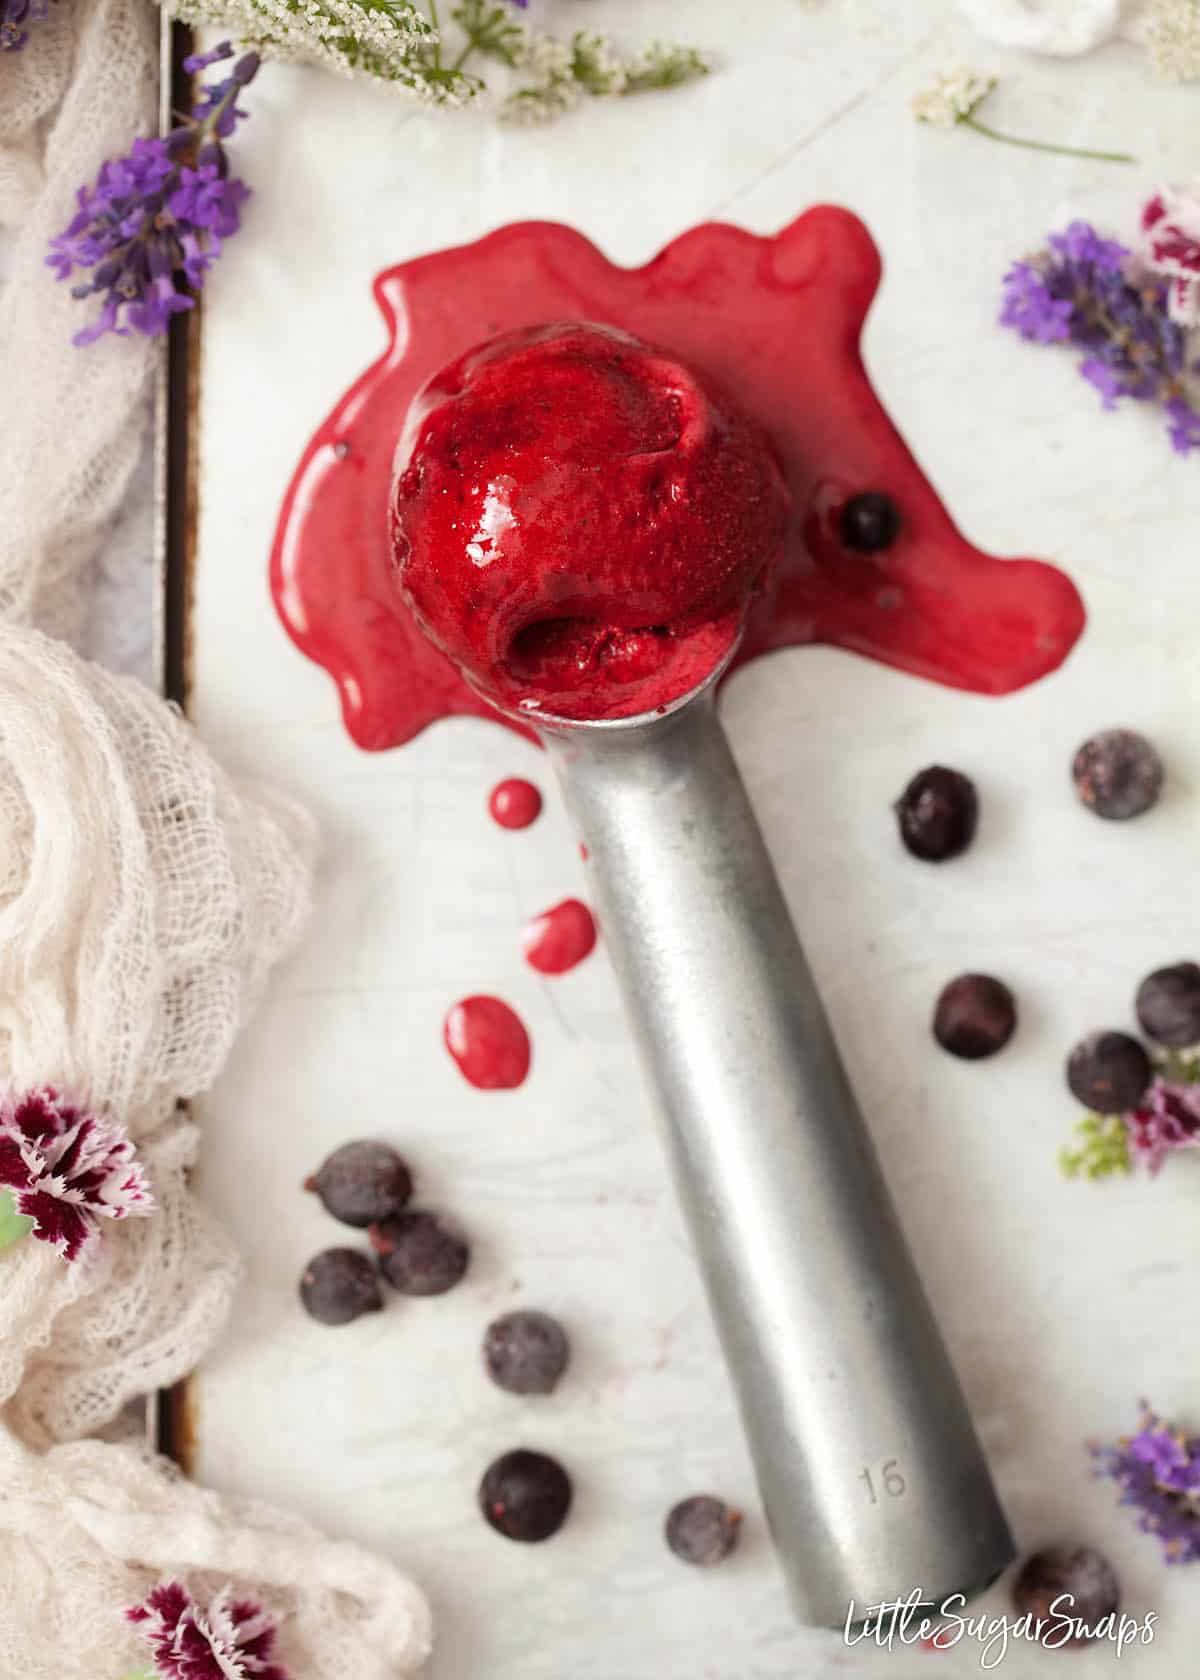 A scoop of blackcurrant sorbet that is melting on an old fashioned ice cream baller